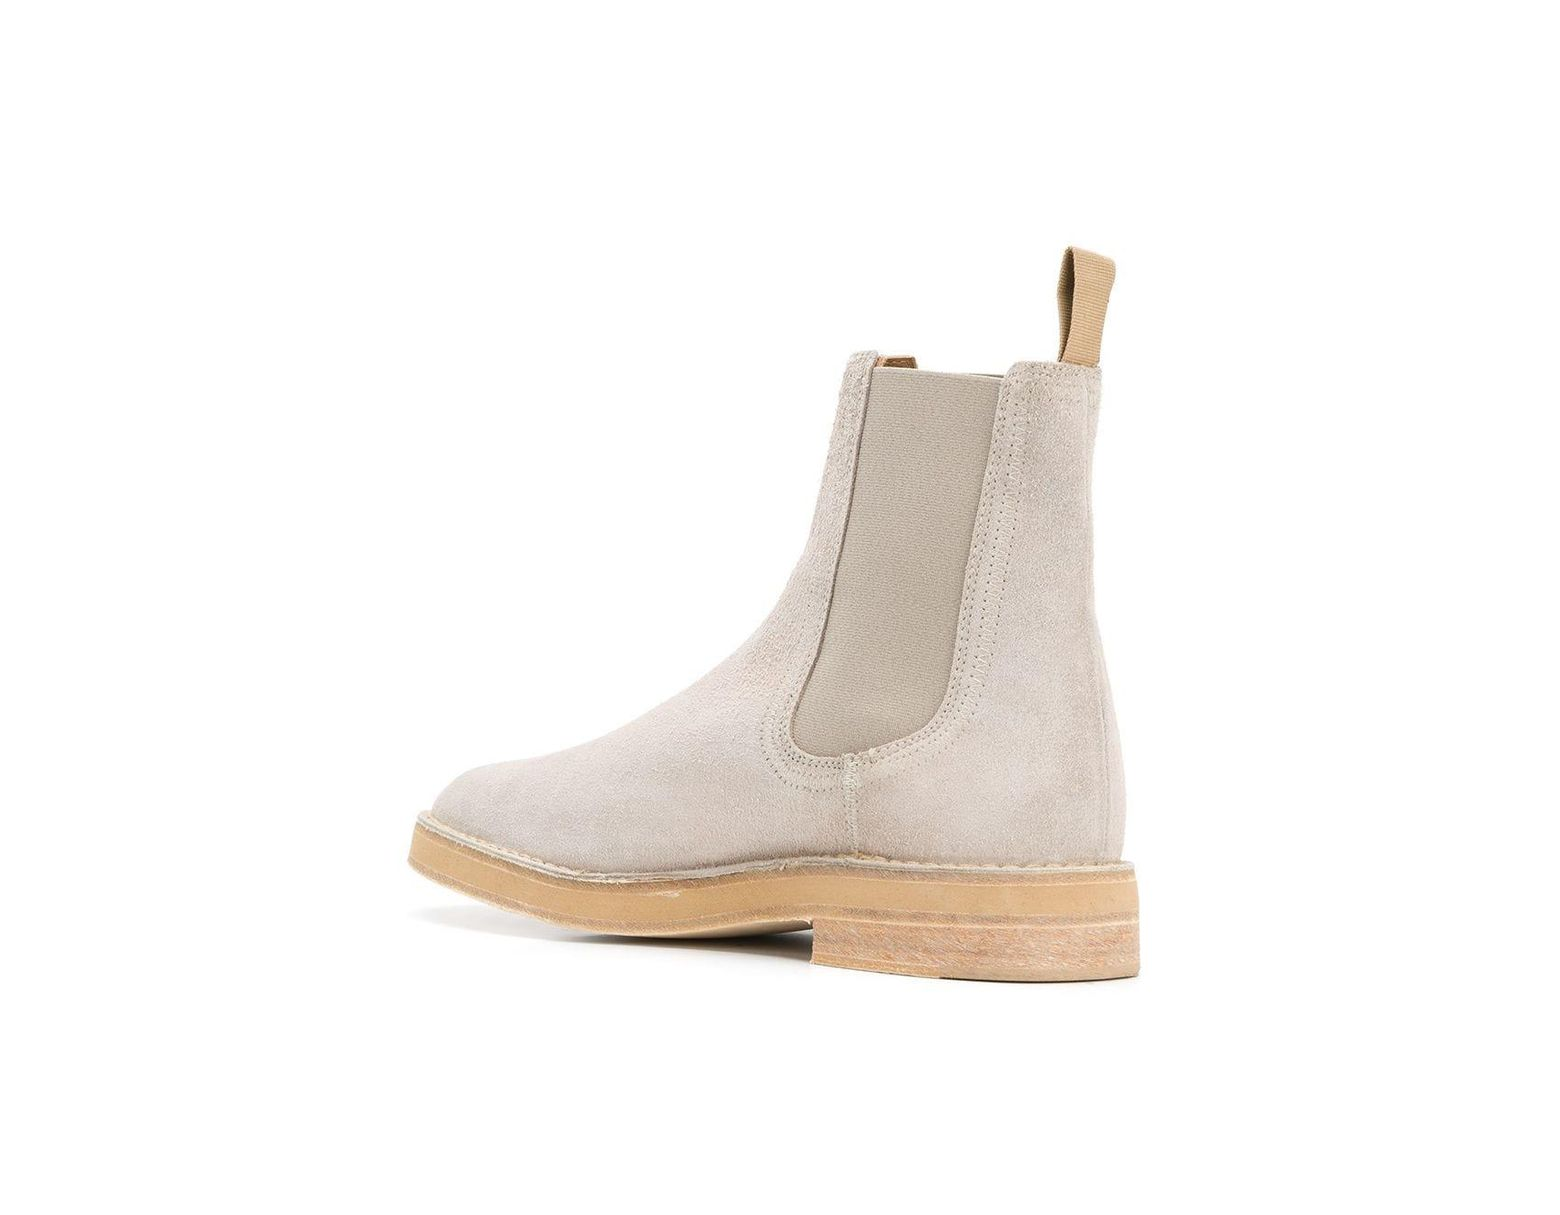 785d0d27fa55e Yeezy Adidas Season 6 Chelsea Boots in Gray for Men - Lyst